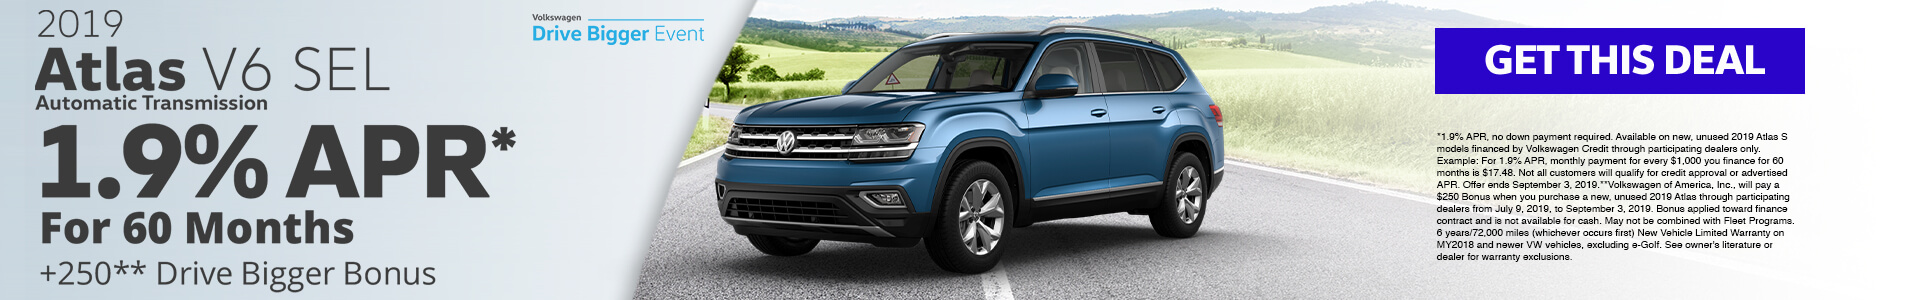 2019 Atlas 1.9% APR for 60 months